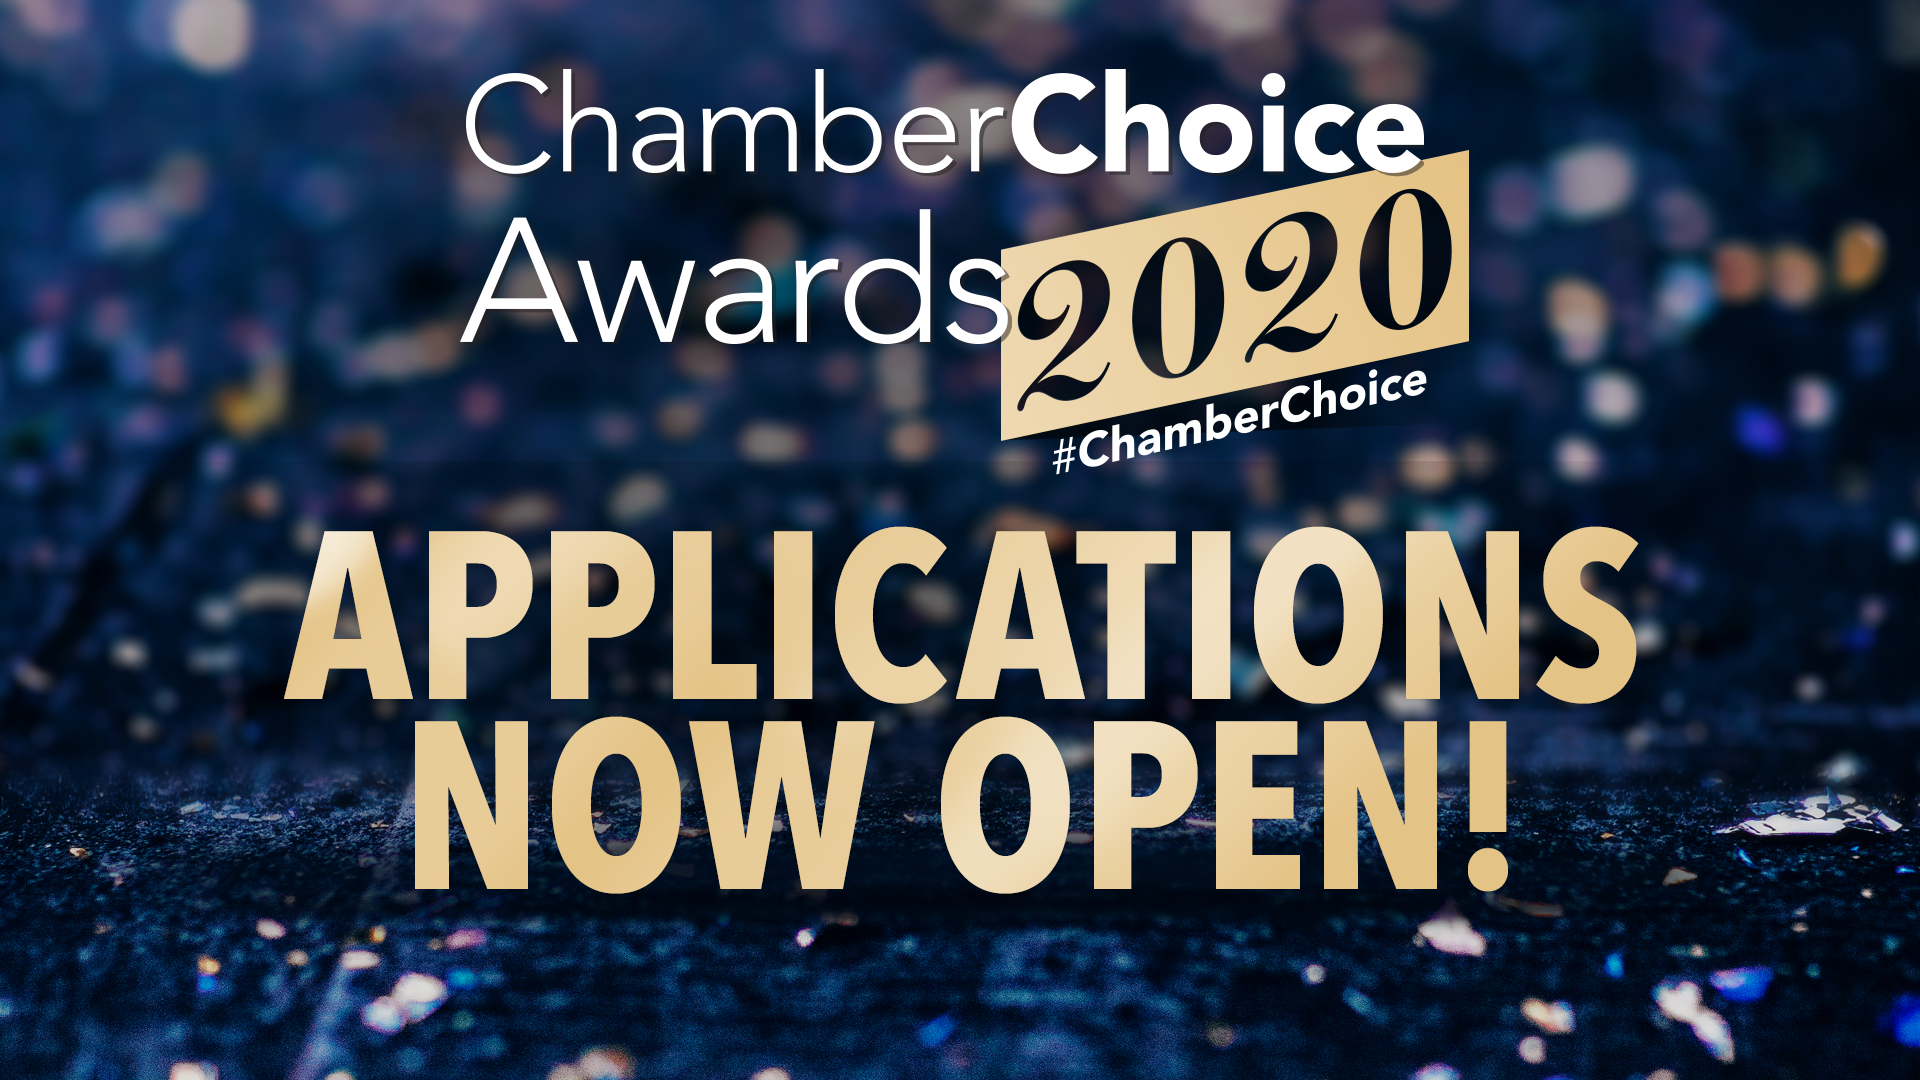 Why apply for a ChamberChoice Award?